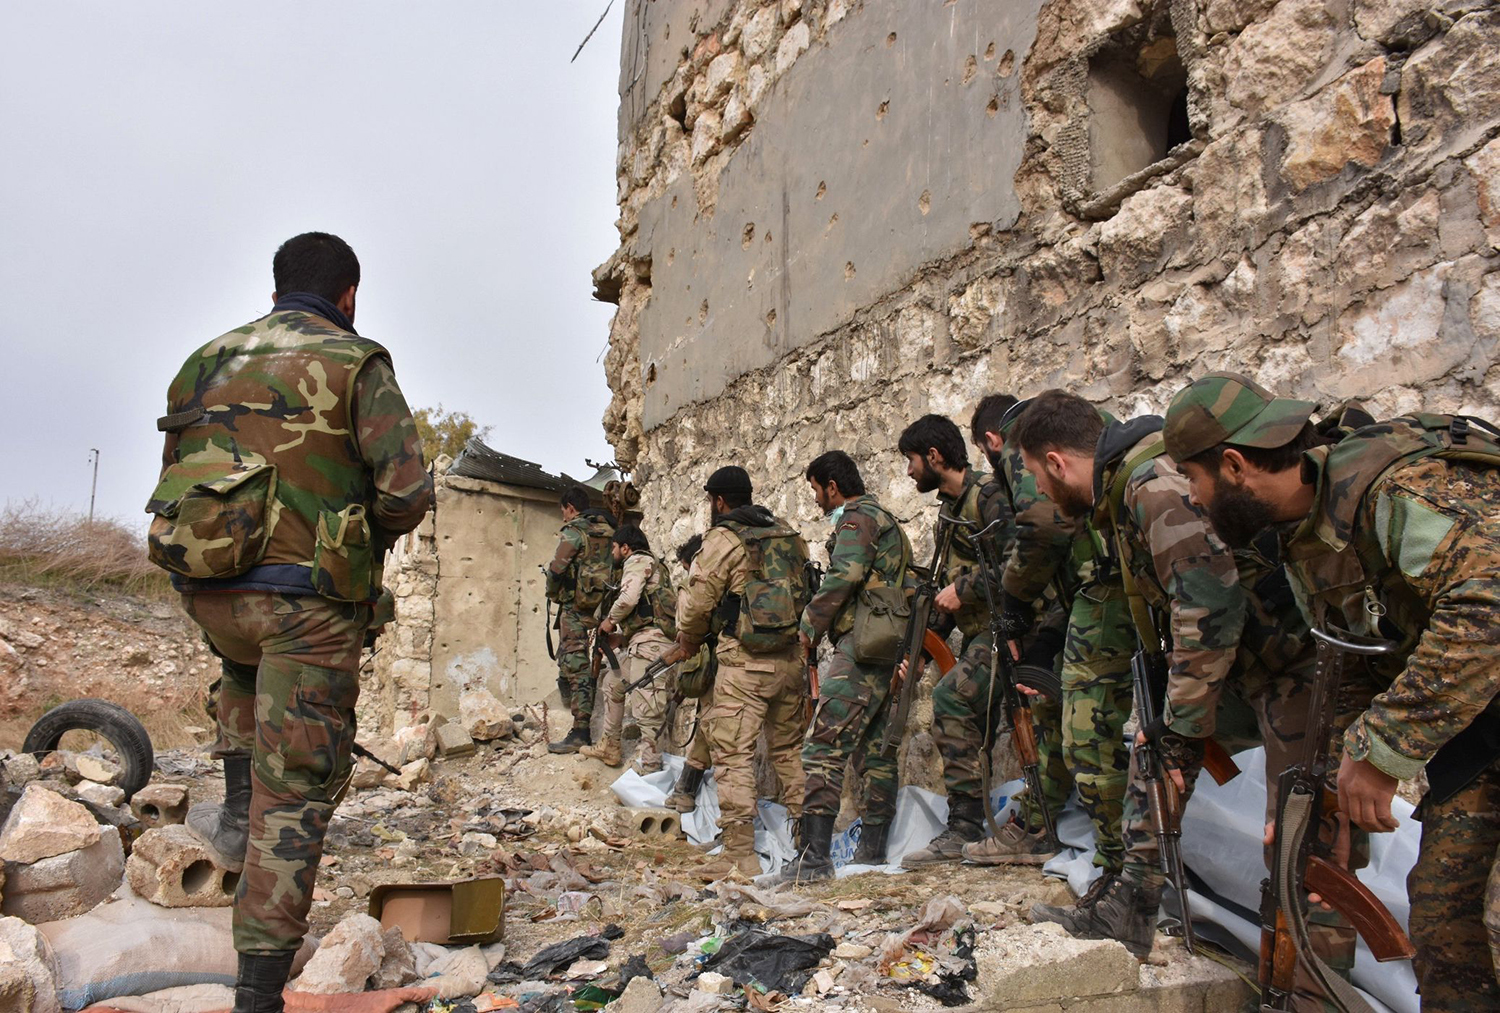 Syrian pro-government troops hold a position in Aleppo's eastern Karm al-Jabal neighborhood as they advance towards al-Shaar neighbourhood on December 5, 2016 during their offensive to retake Syria's second city. The Syrian Observatory for Human Rights said the advances of the Syrian and allied forces left the large Shaar neighbourhood encircled by government forces and in danger of falling from rebel control. With the capture of Shaar, the army would hold 70 percent of east Aleppo, four years after rebels first seized it. / AFP PHOTO / GEORGE OURFALIAN / TT / kod 444